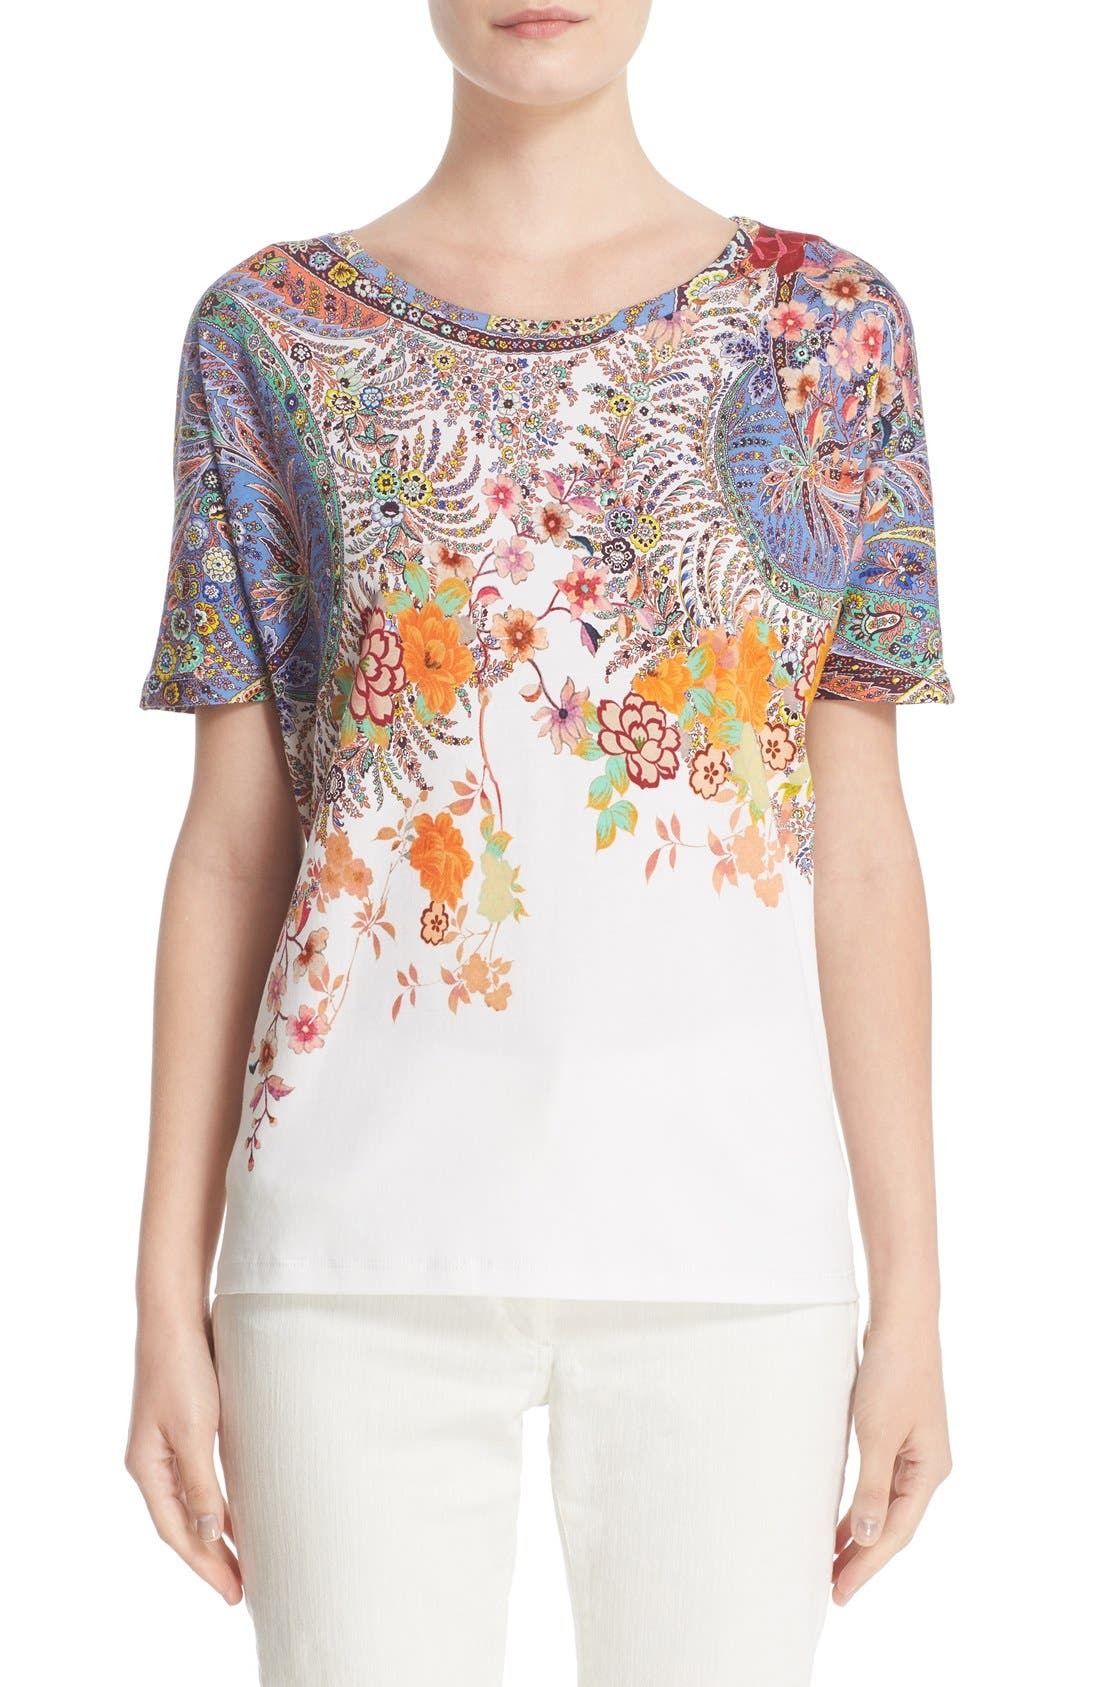 Alternate Image 1 Selected - Etro Floral & Paisley Print Cotton Tee